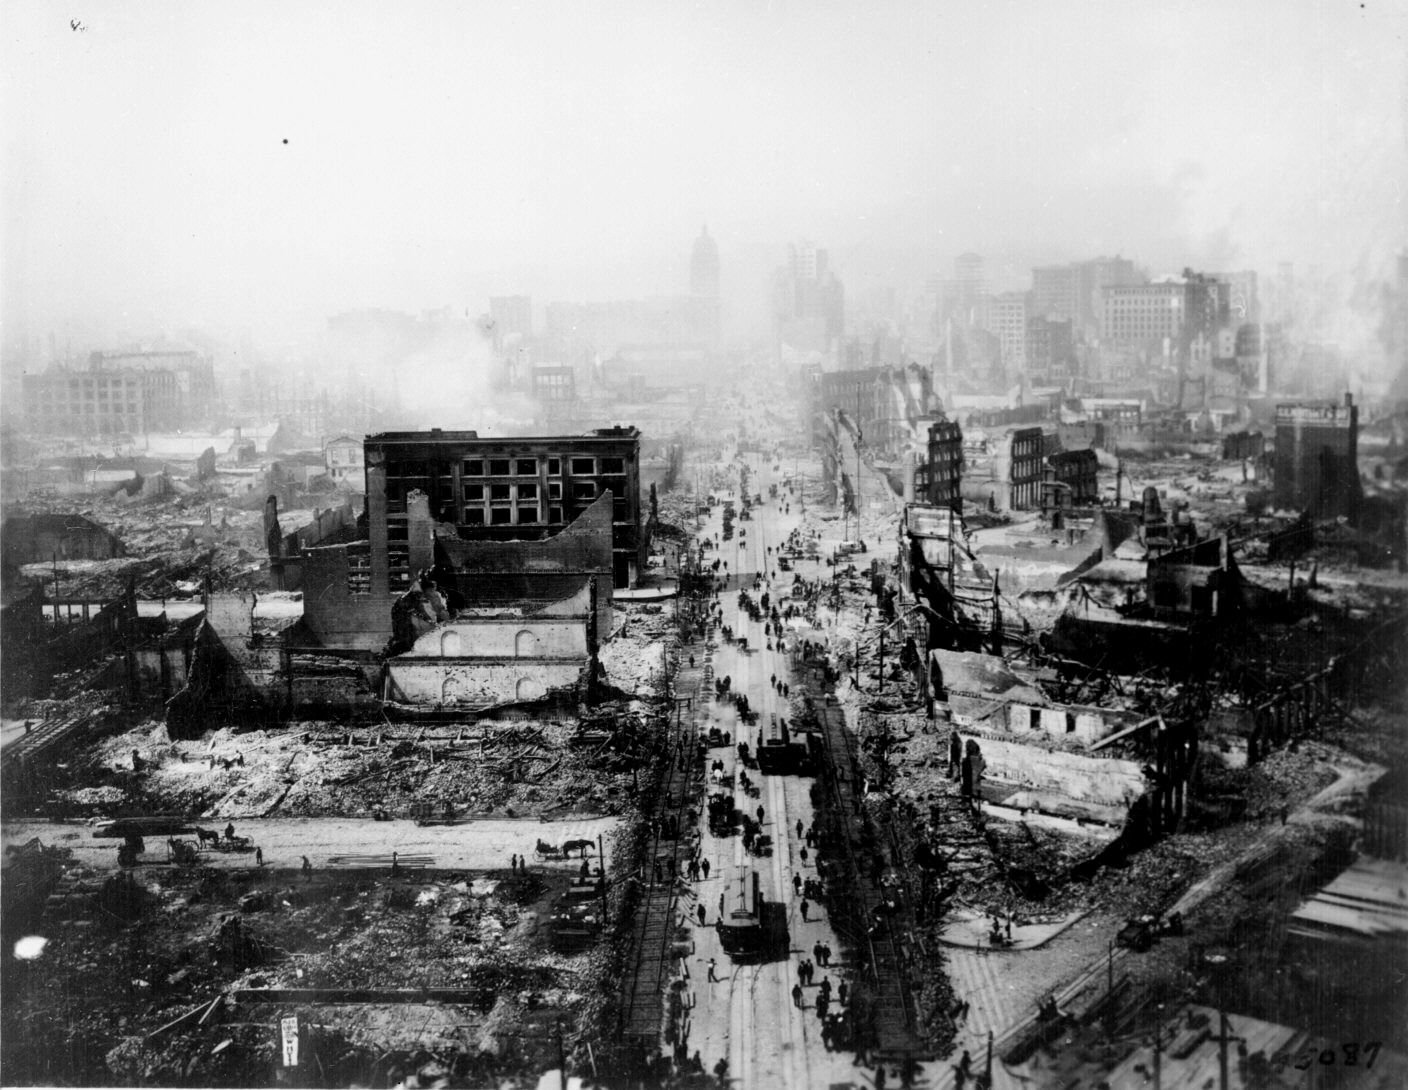 San francisco 1906 earthquake.jpg